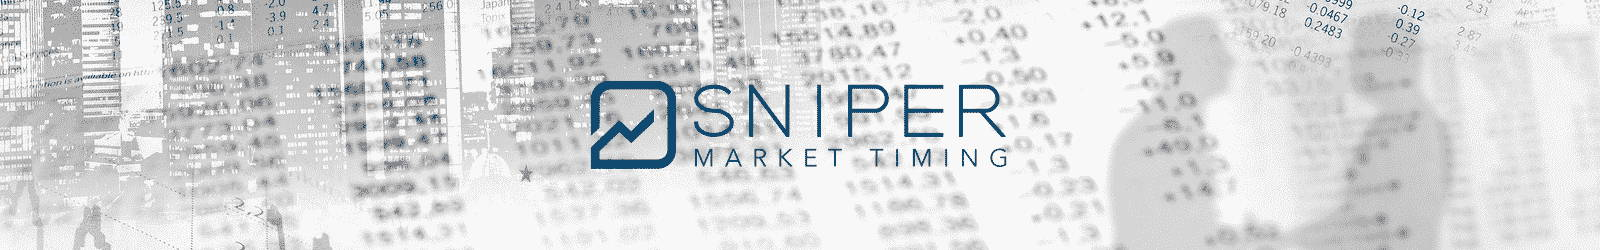 Market timing signals for stock and bond markets with integrated risk index ratings